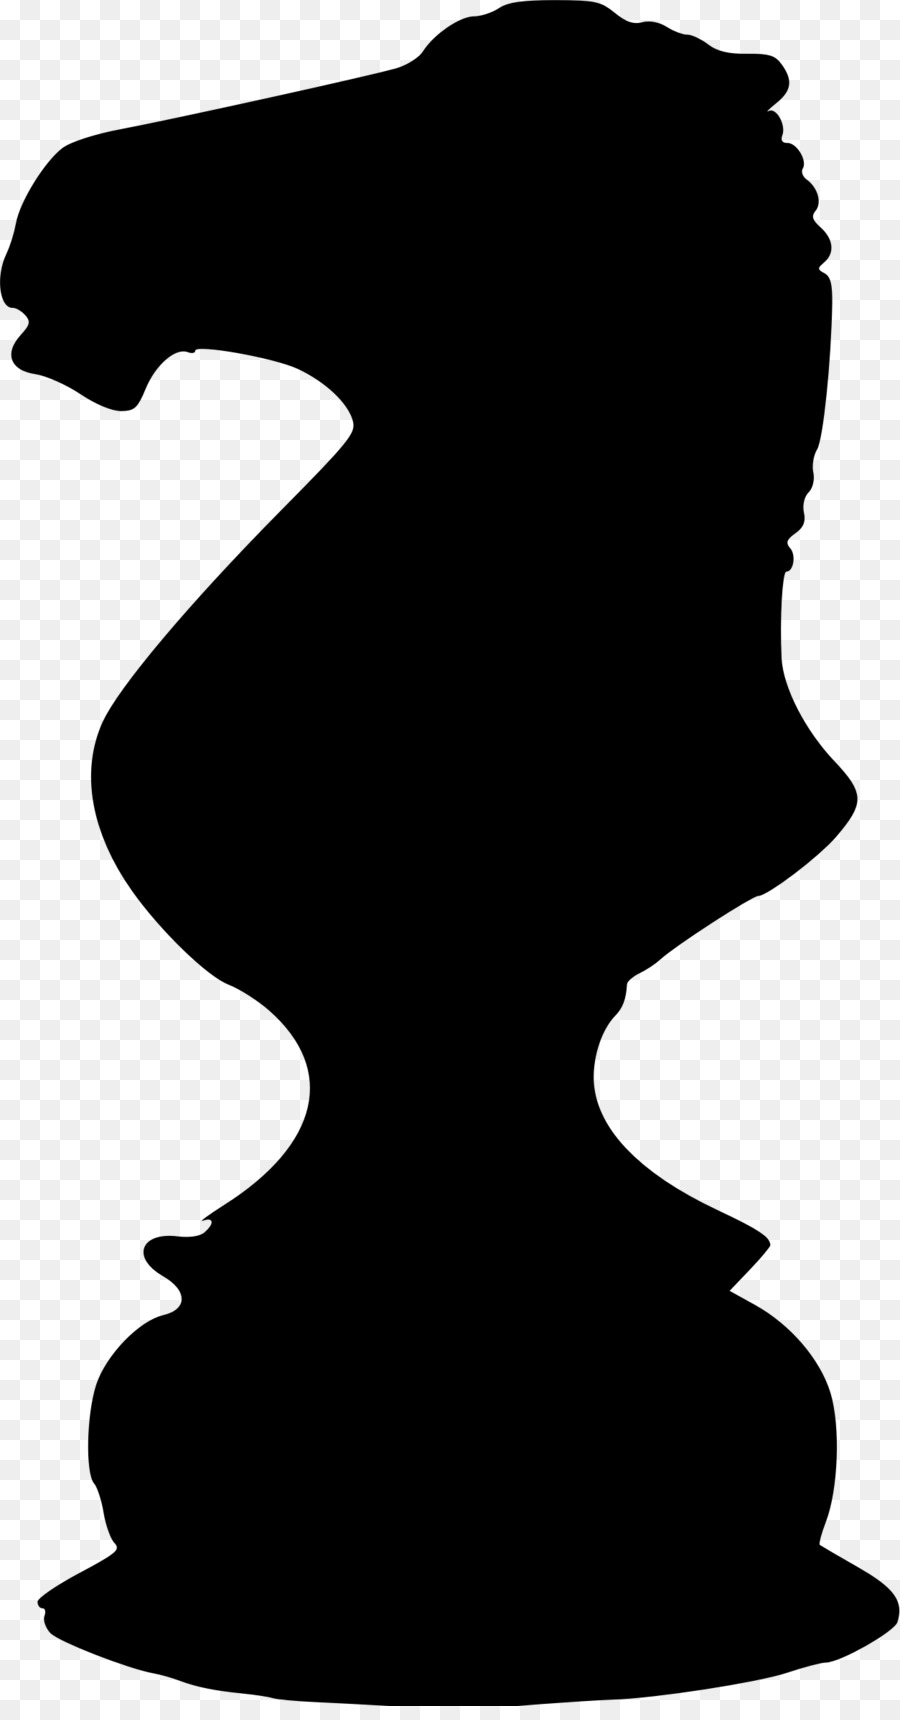 Knight chess piece clipart svg freeuse stock Knight Cartoon png download - 1254*2377 - Free Transparent ... svg freeuse stock